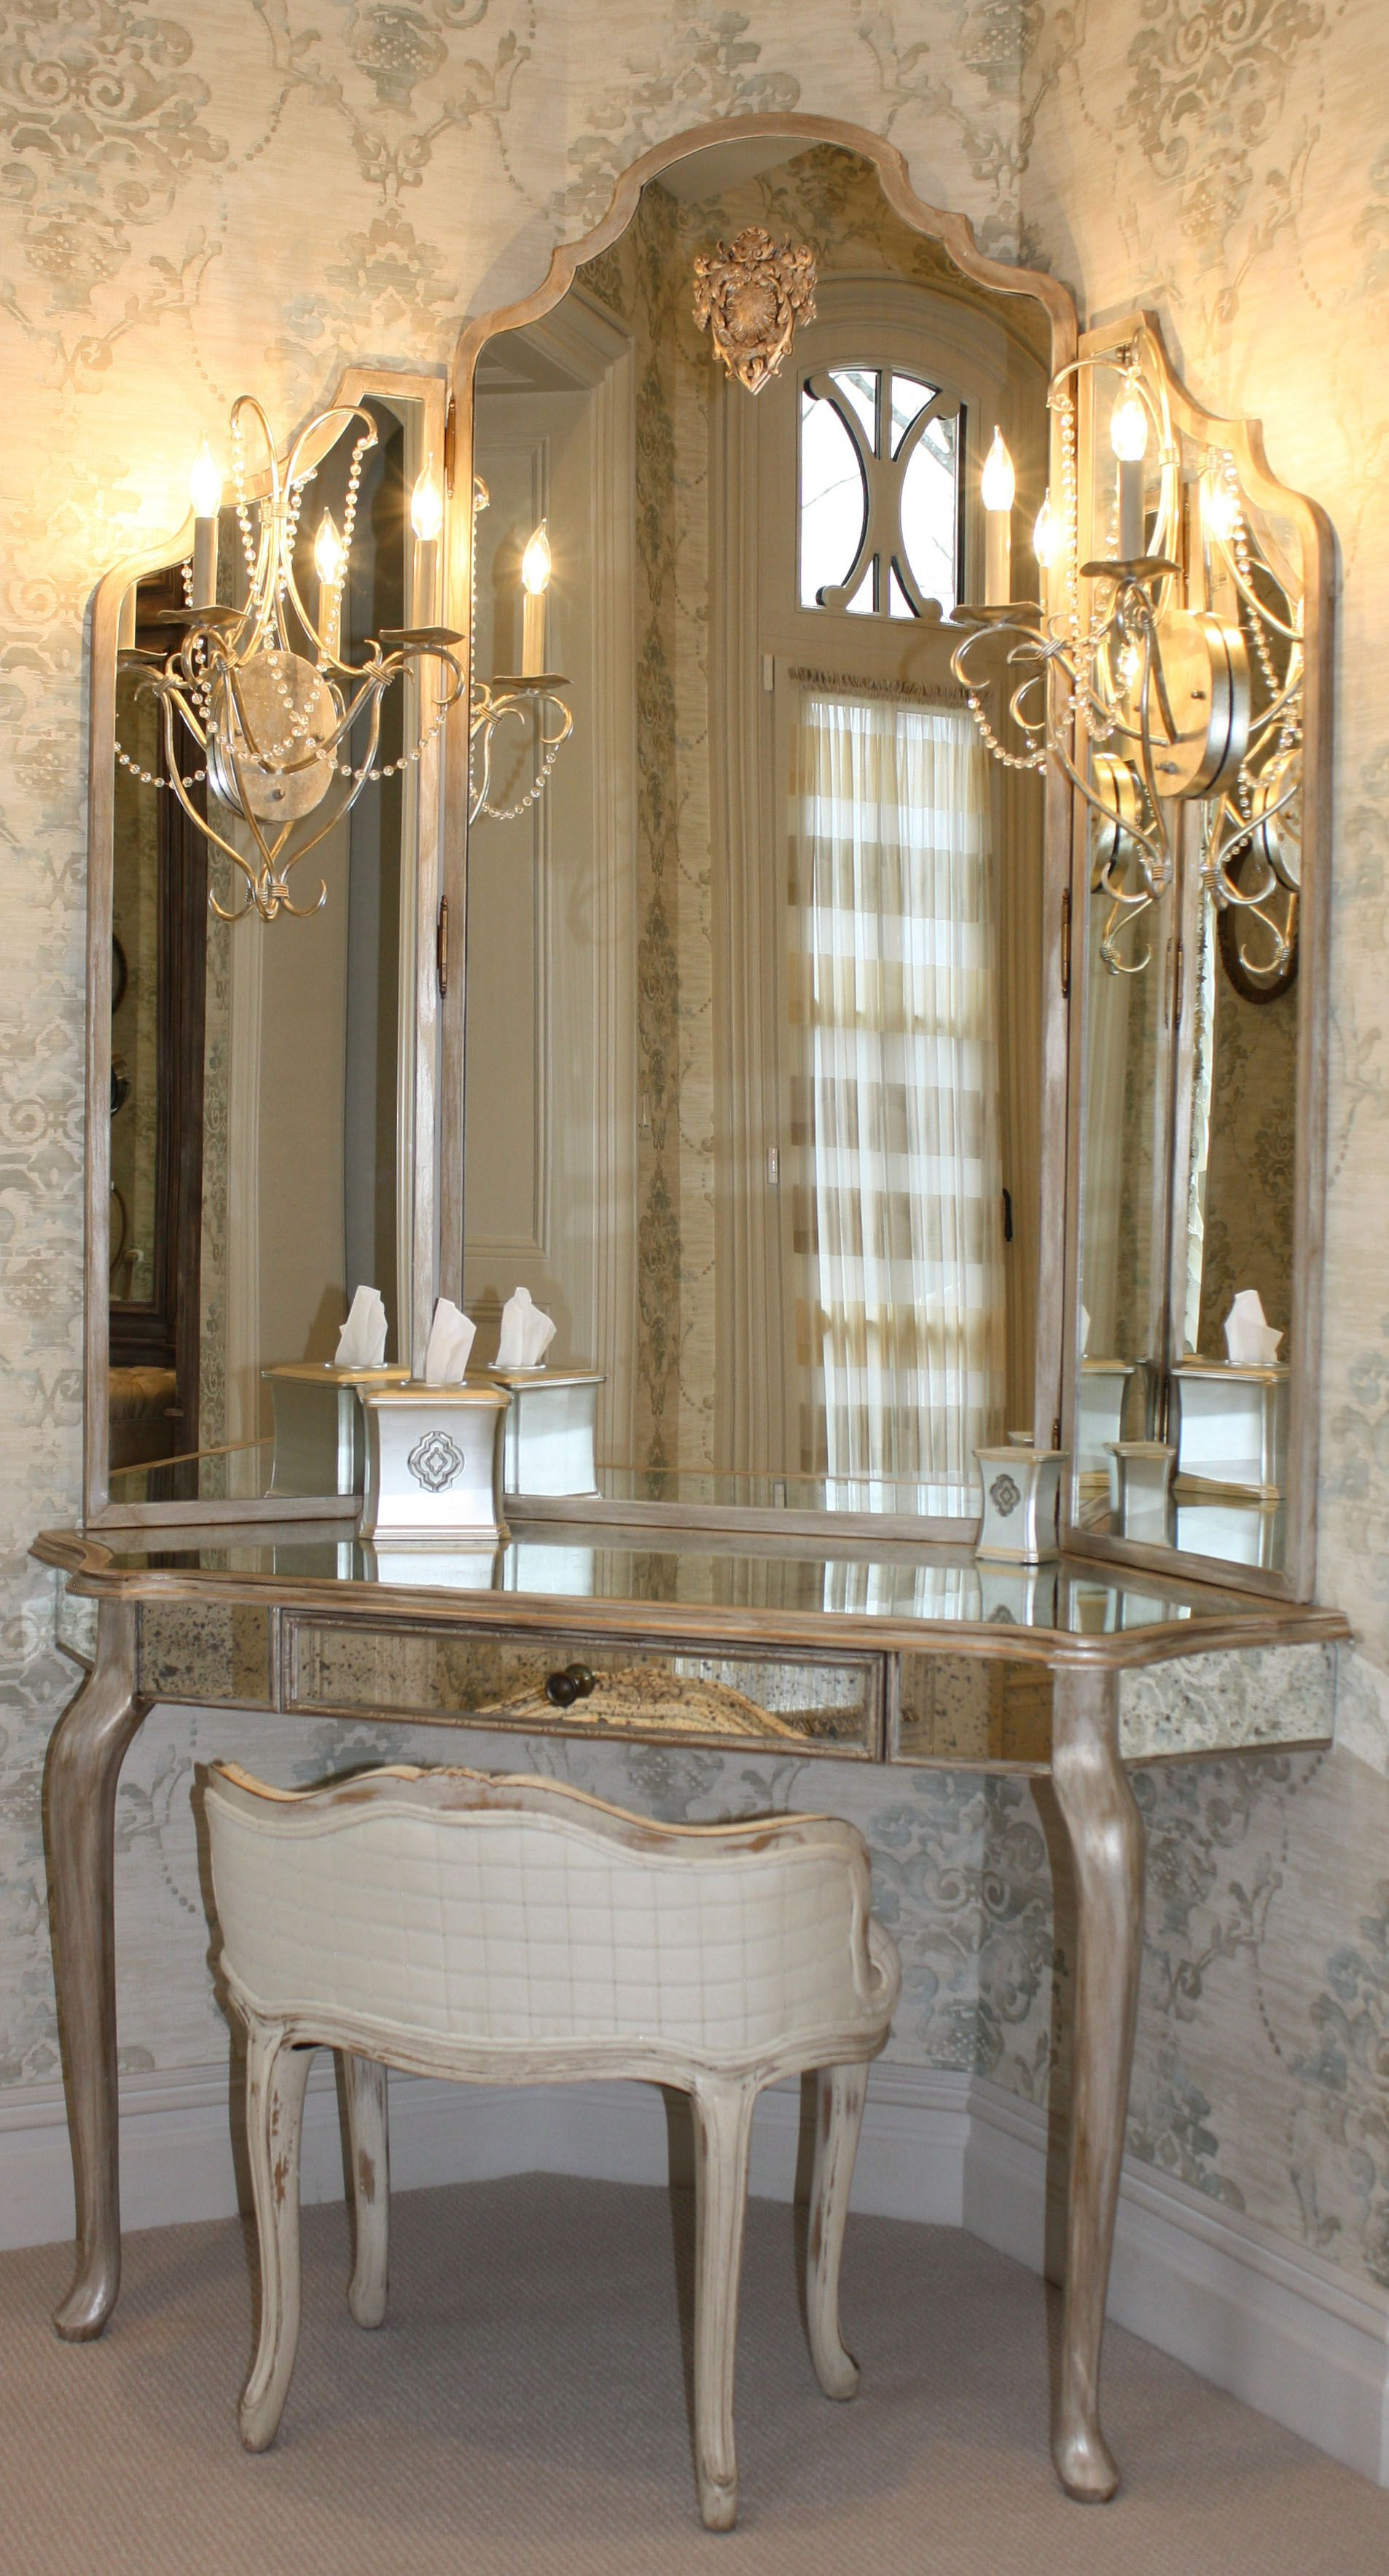 Guilded French dressing table with three way mirror. Can